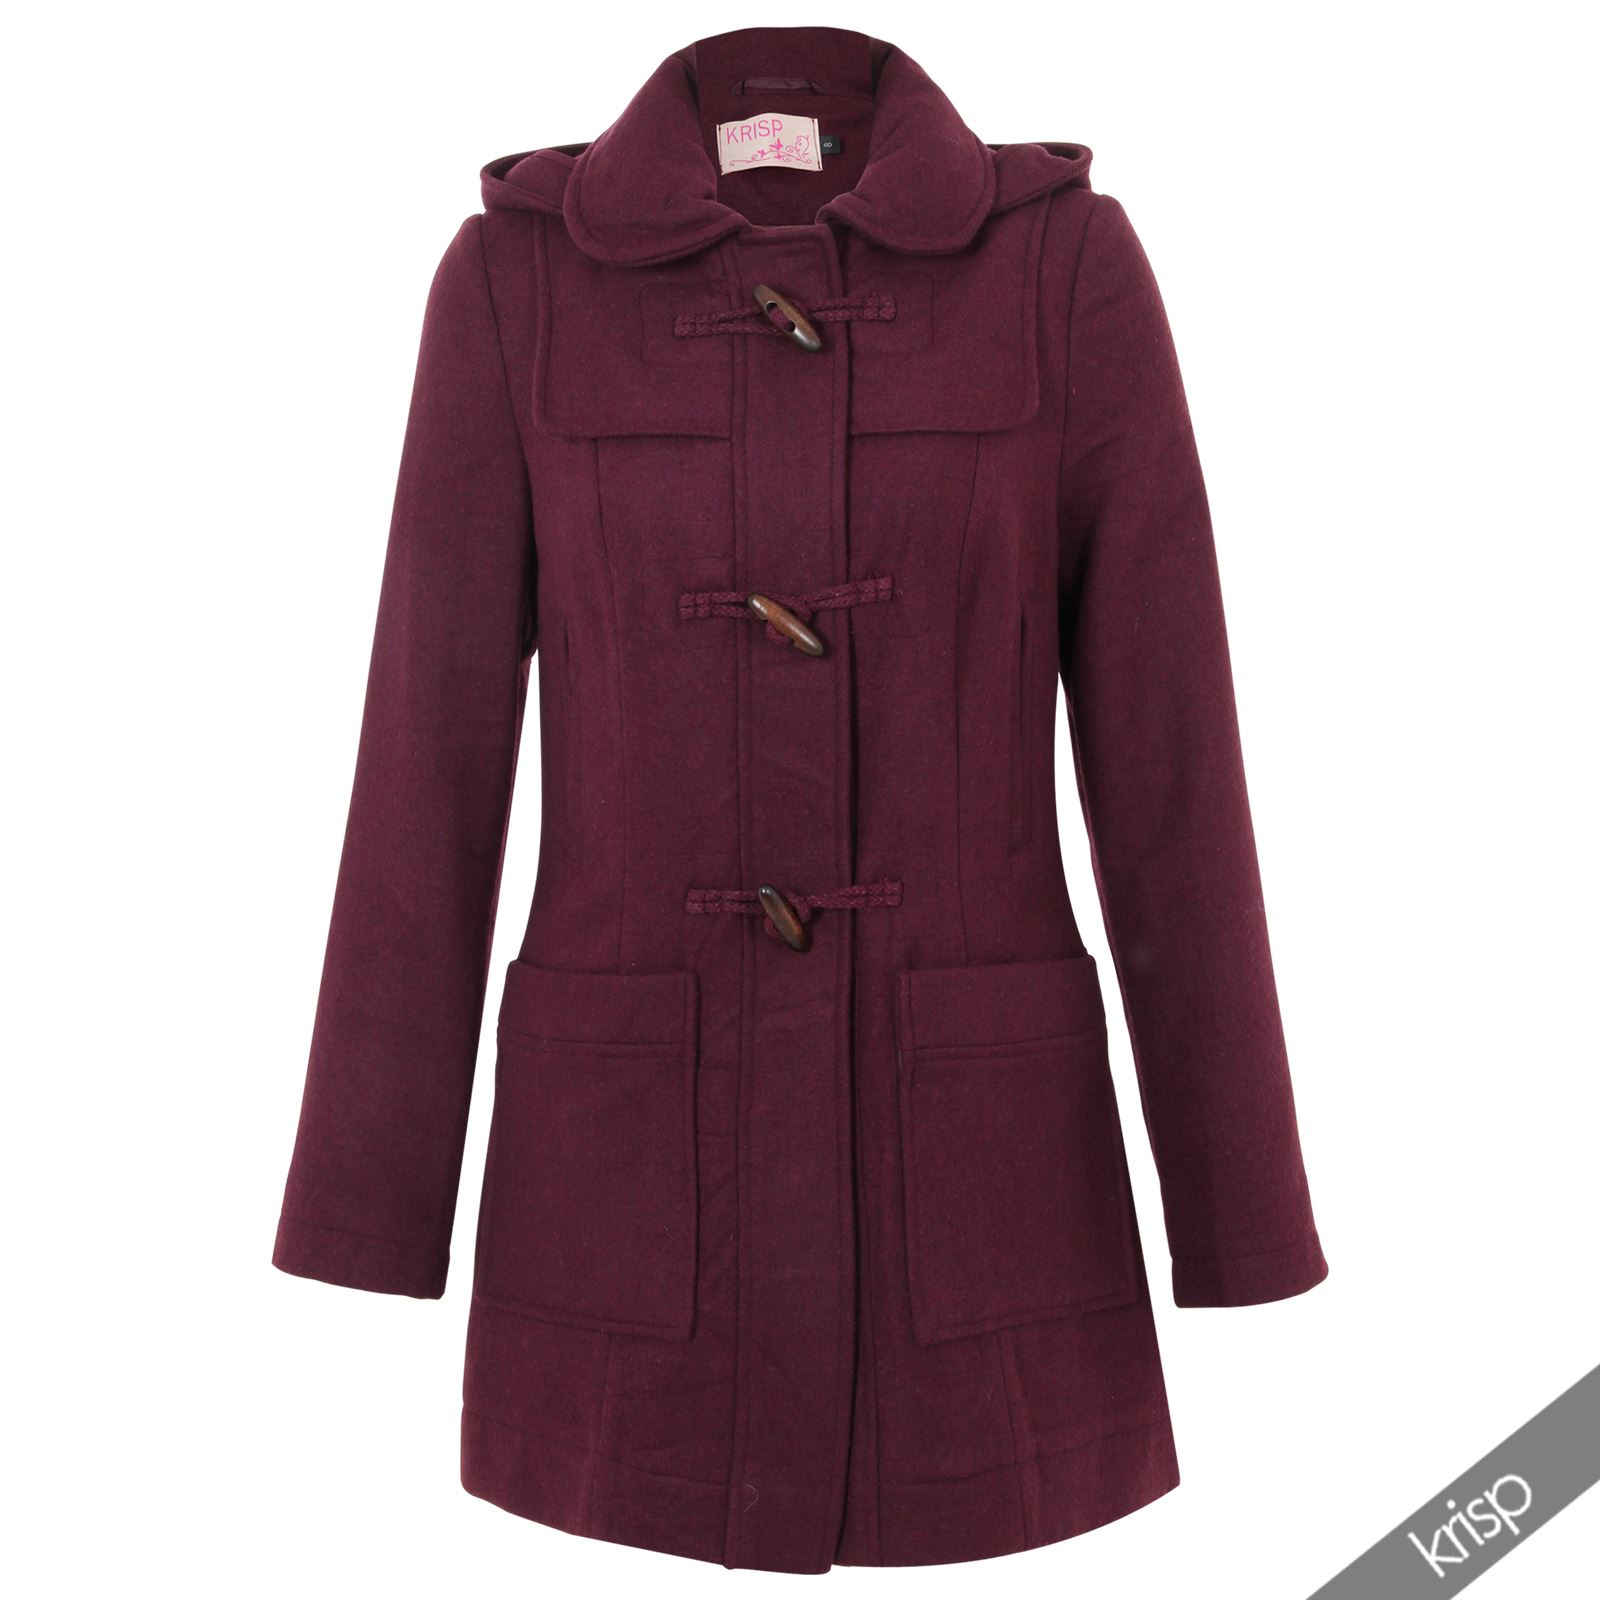 Shop the latest styles of Womens Hooded Wool & Wool Blend Coats at Macys. Check out our designer collection of chic coats including peacoats, trench coats, puffer coats and more!